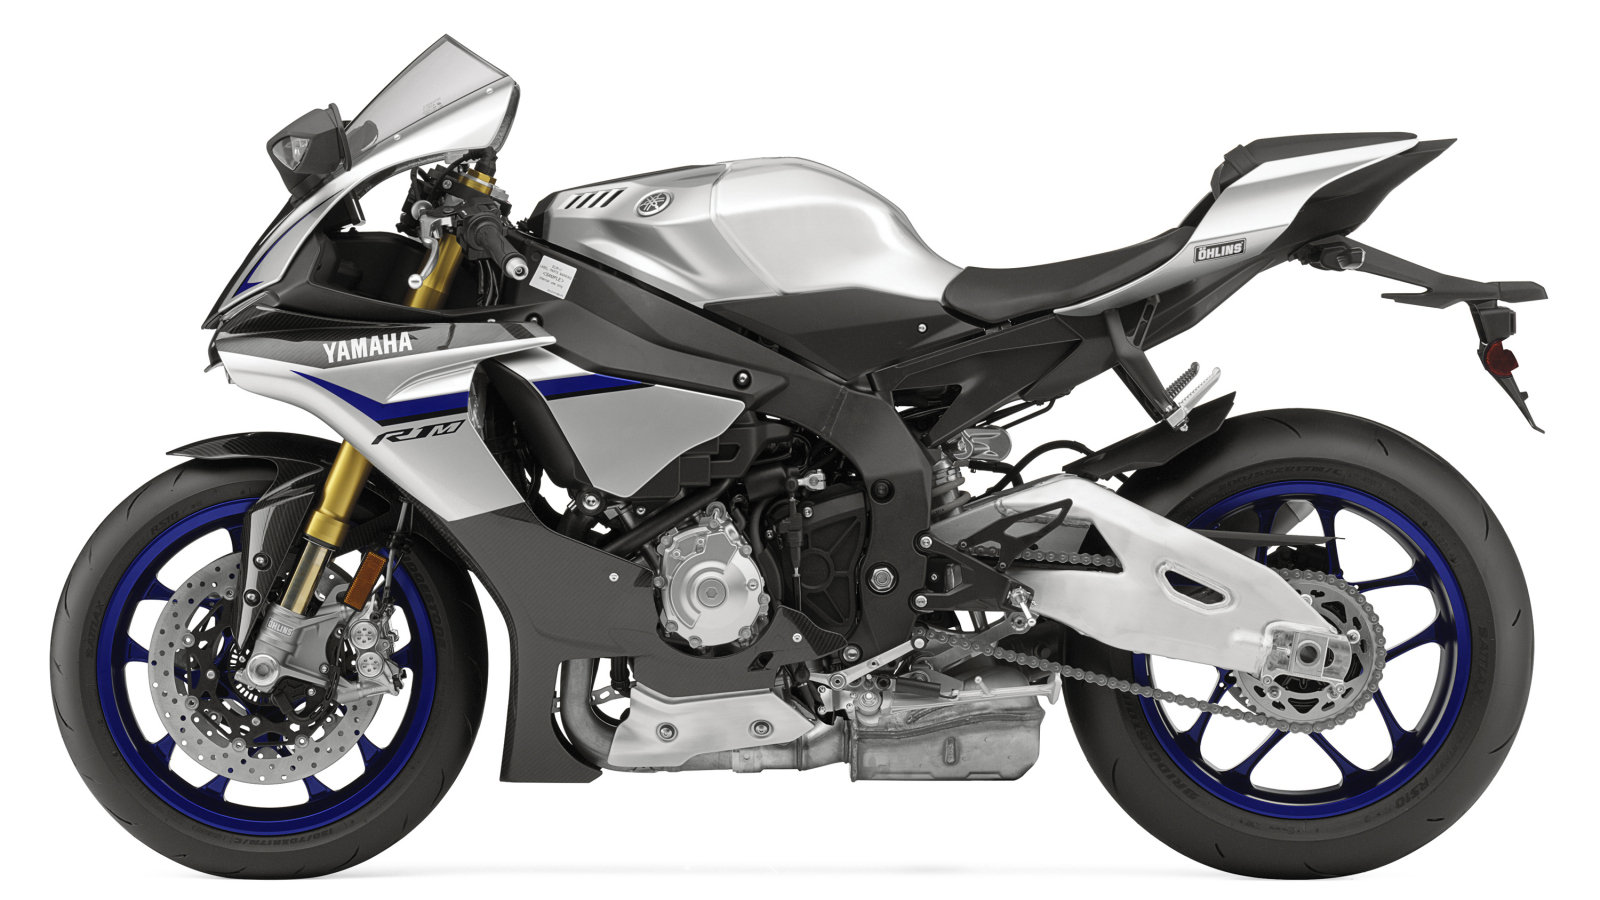 2016 yamaha yzf r1 yzf r1s yzf r1m picture 680888 for Yamaha r1 top speed